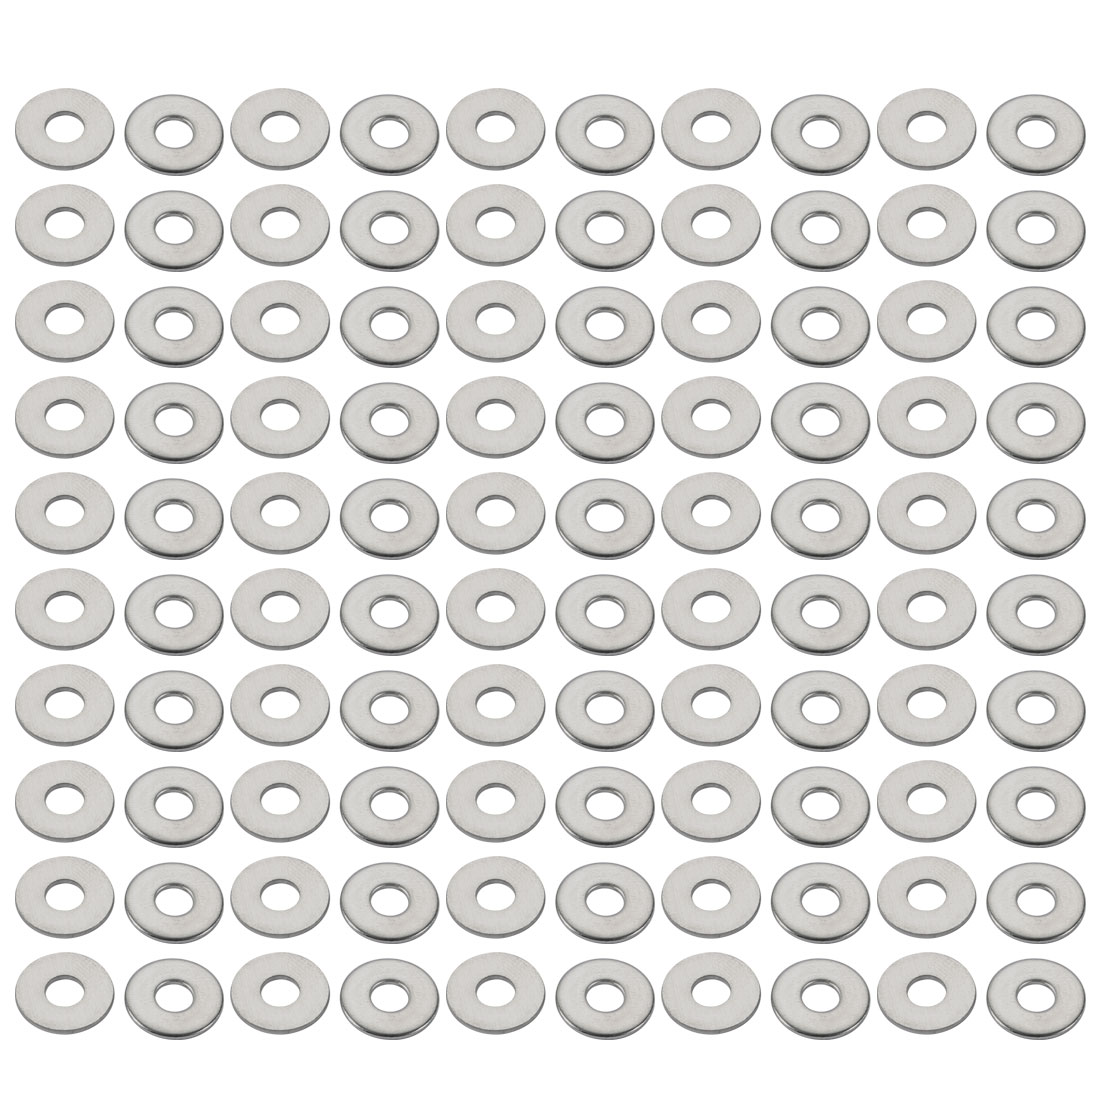 M4x12mmx1mm DIN9021 316 Stainless Steel Flat Washer Silver Tone 100pcs